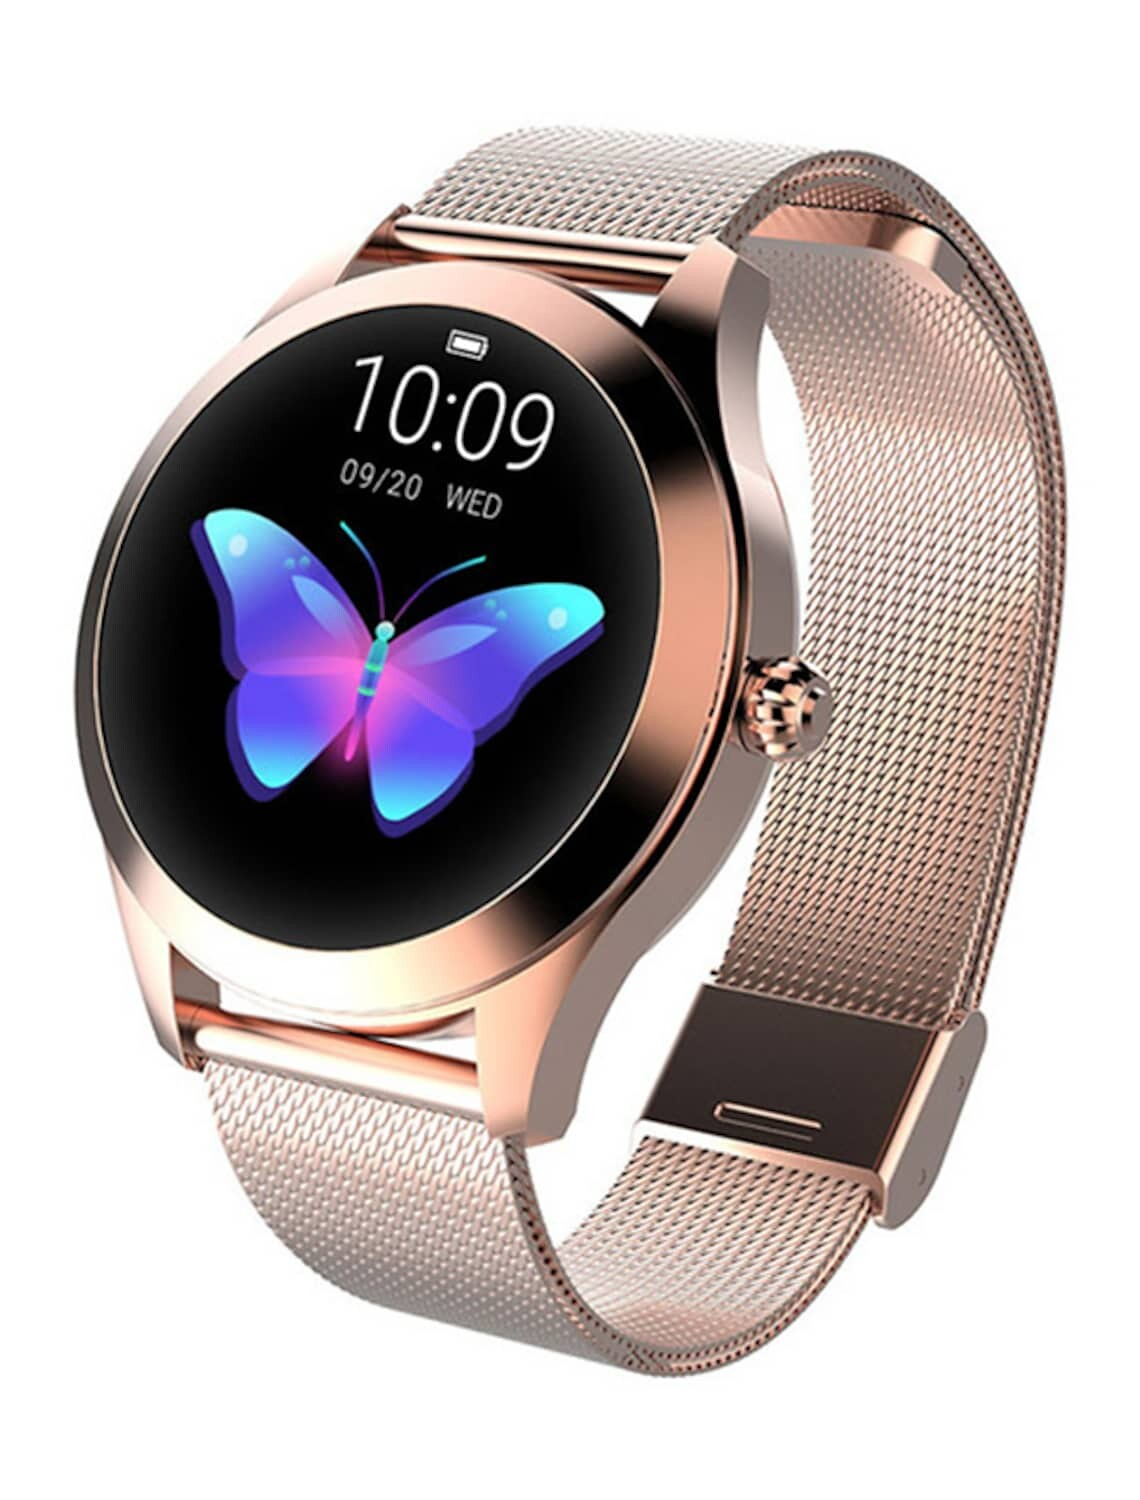 44% OFF+Free Shipping Fitness Tracker Bluetooth Smartwatch  Code: ANNIE